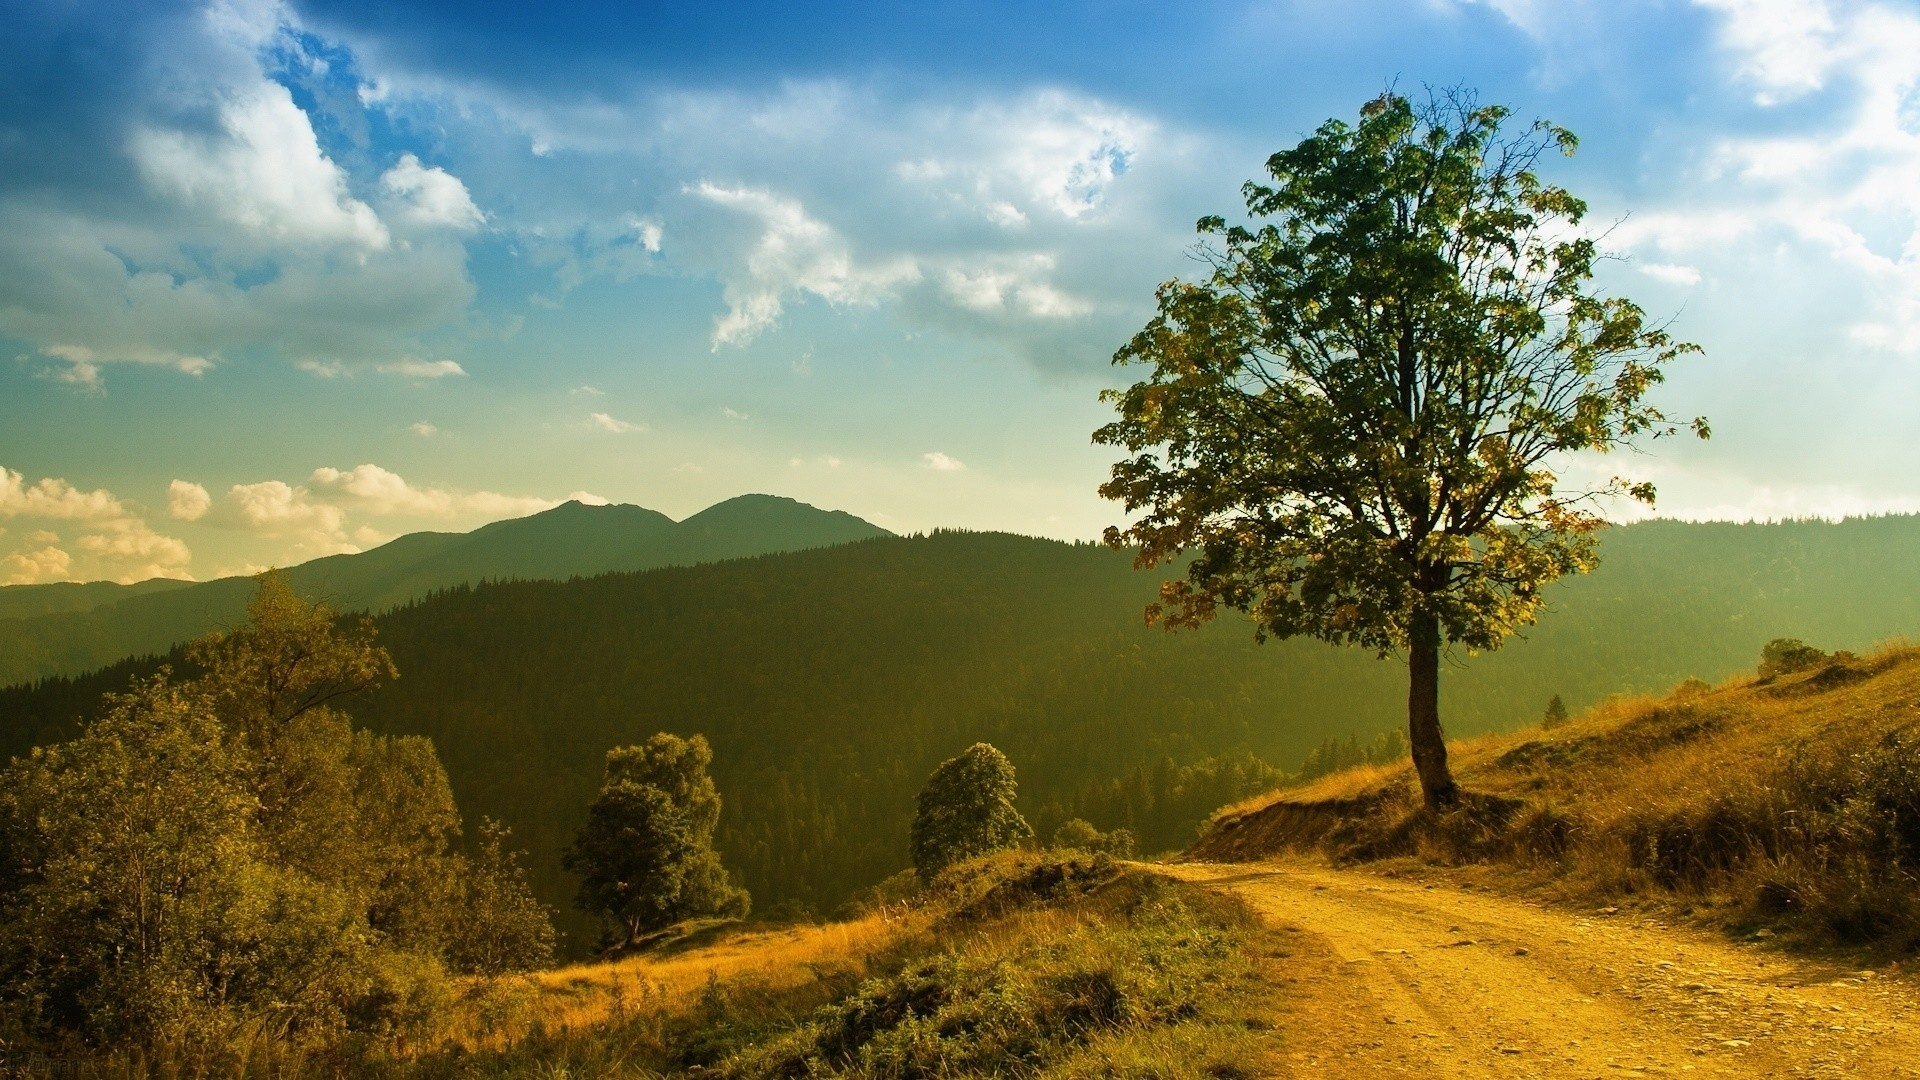 Landscapes nature Trees roads HD Wallpaper